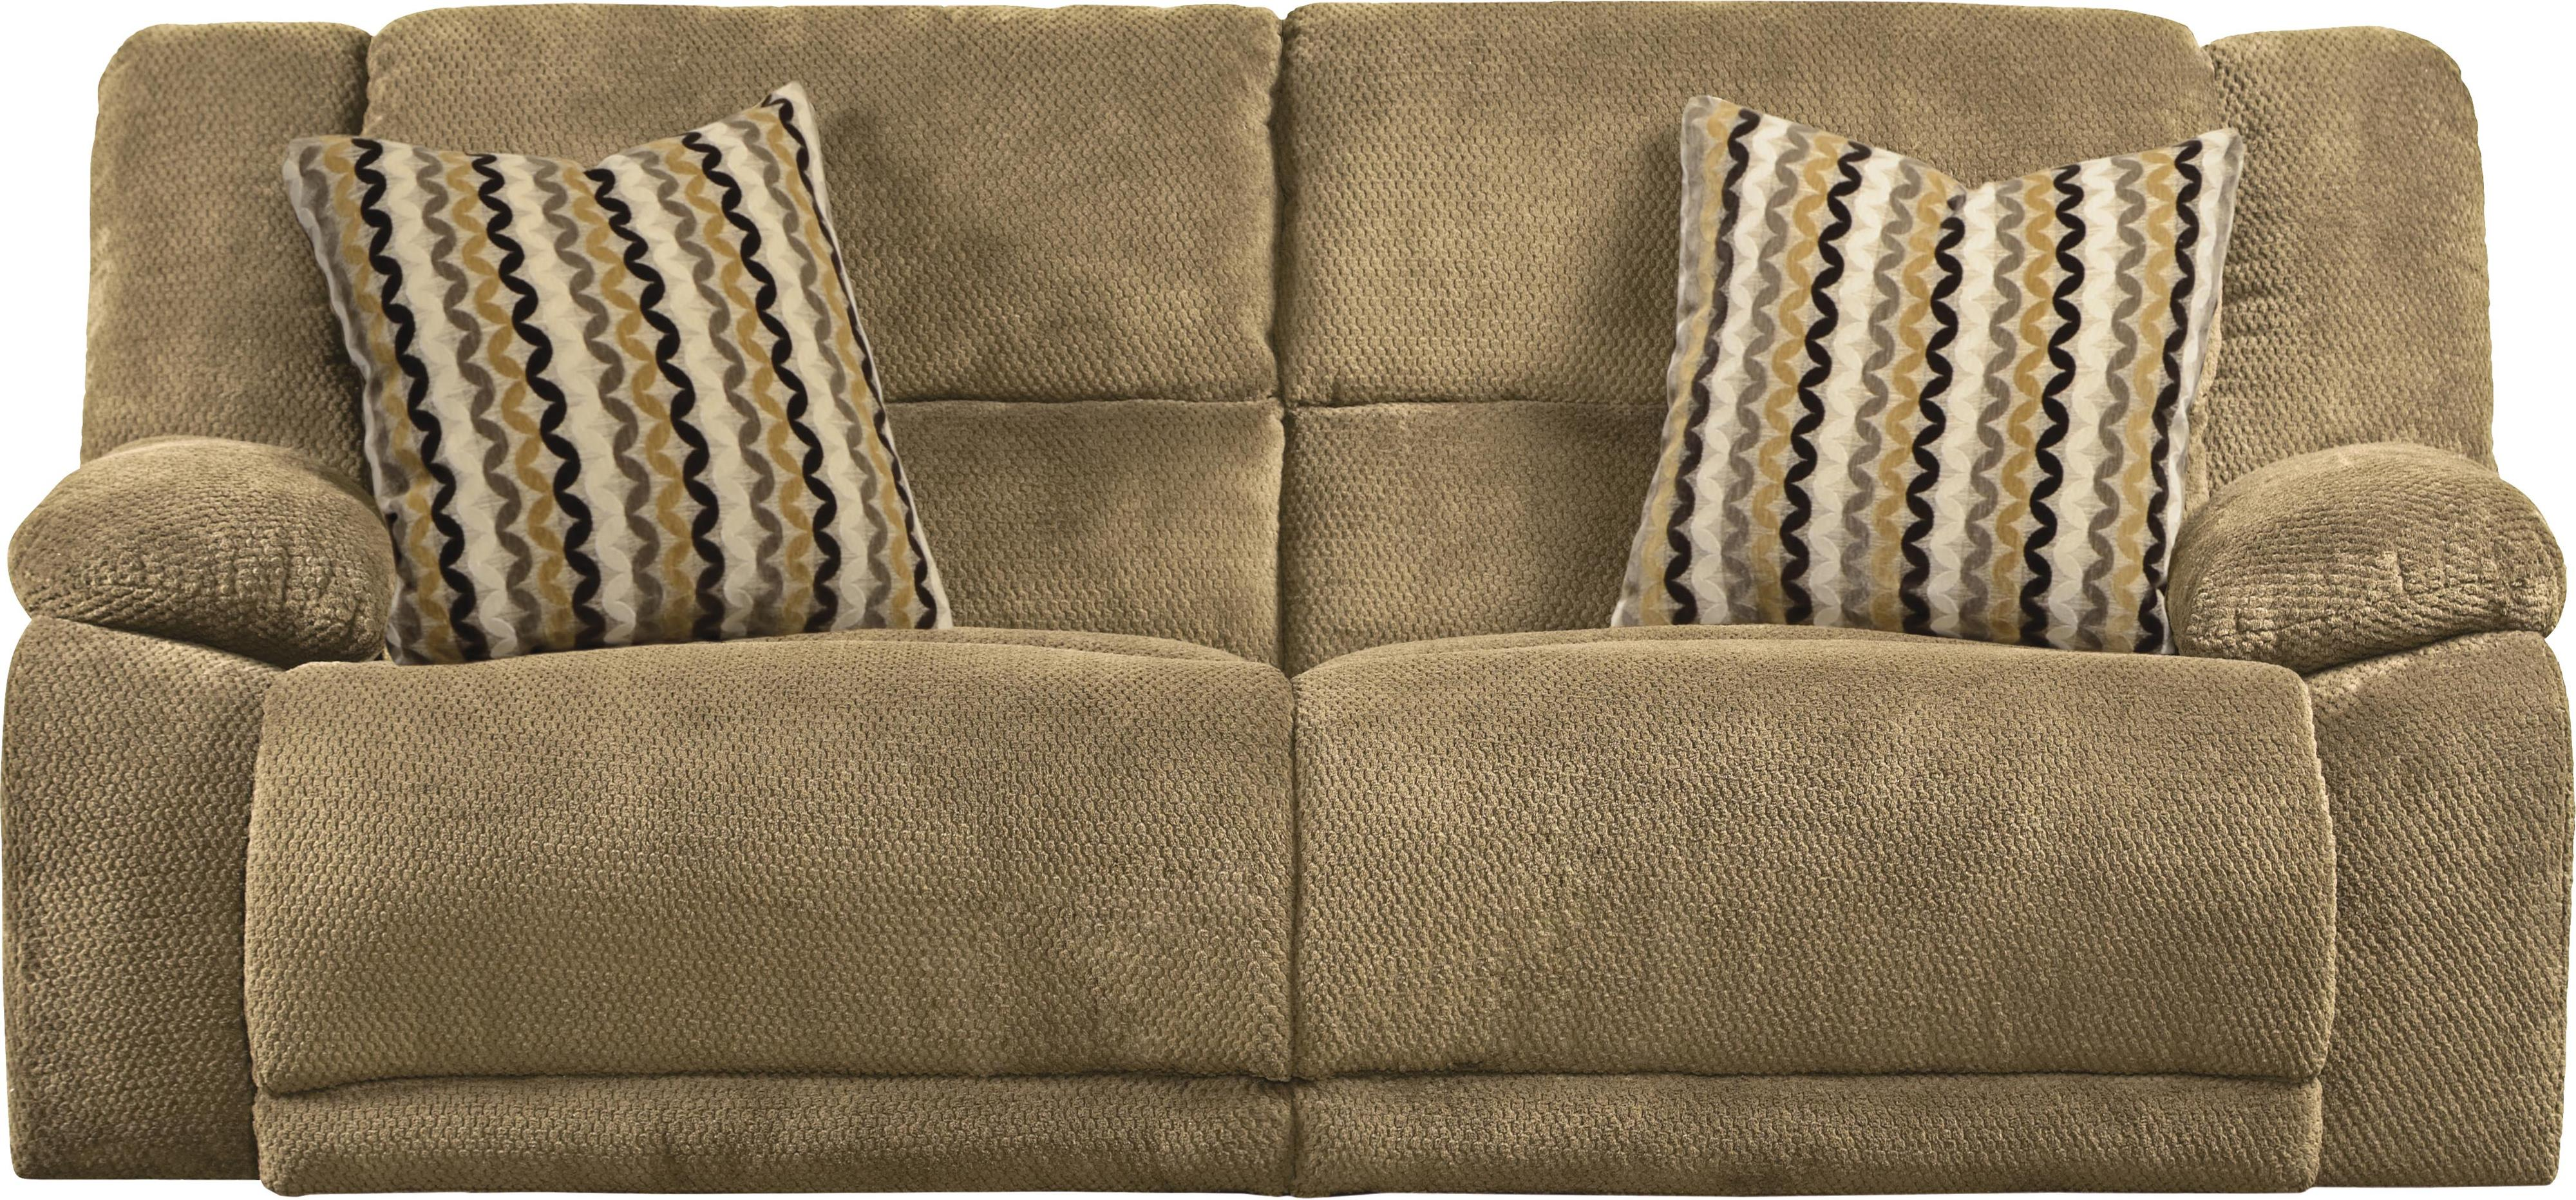 Power reclining sofa Catnapper loveseat recliner